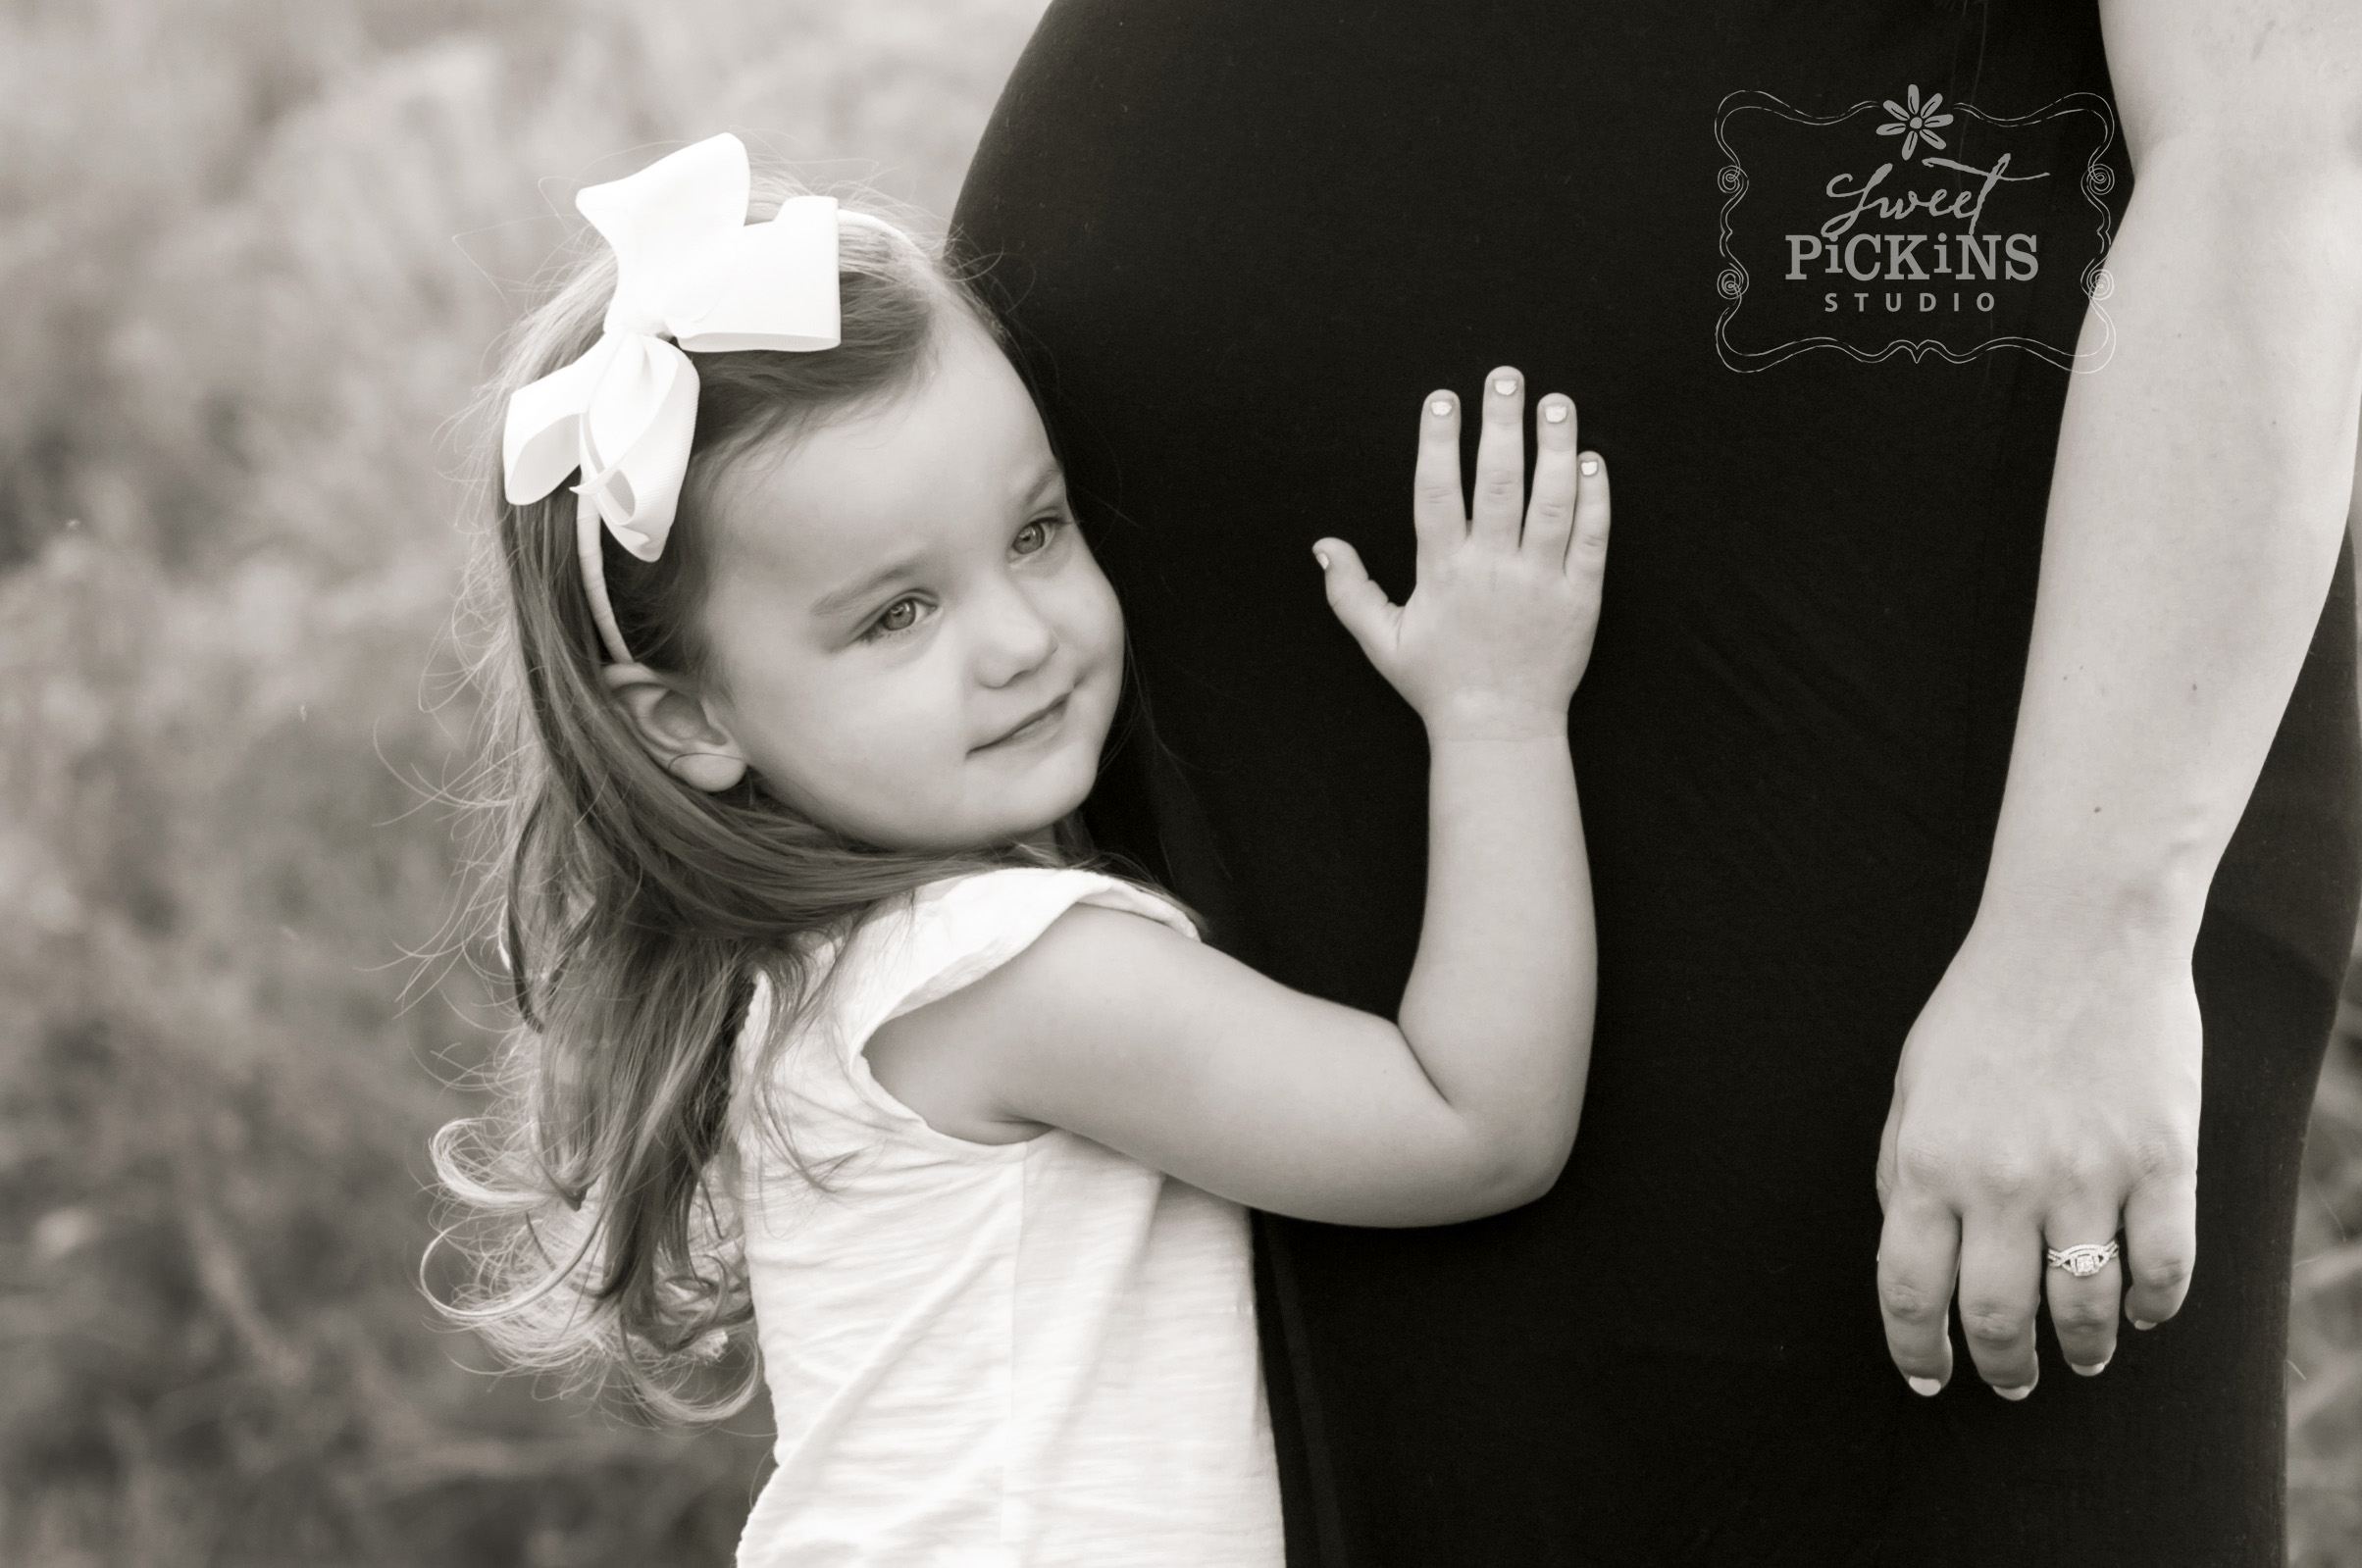 Peru, Indiana Black and White Baby Belly Photo Session in Field at Sunset | copyright Sweet Pickins Studio